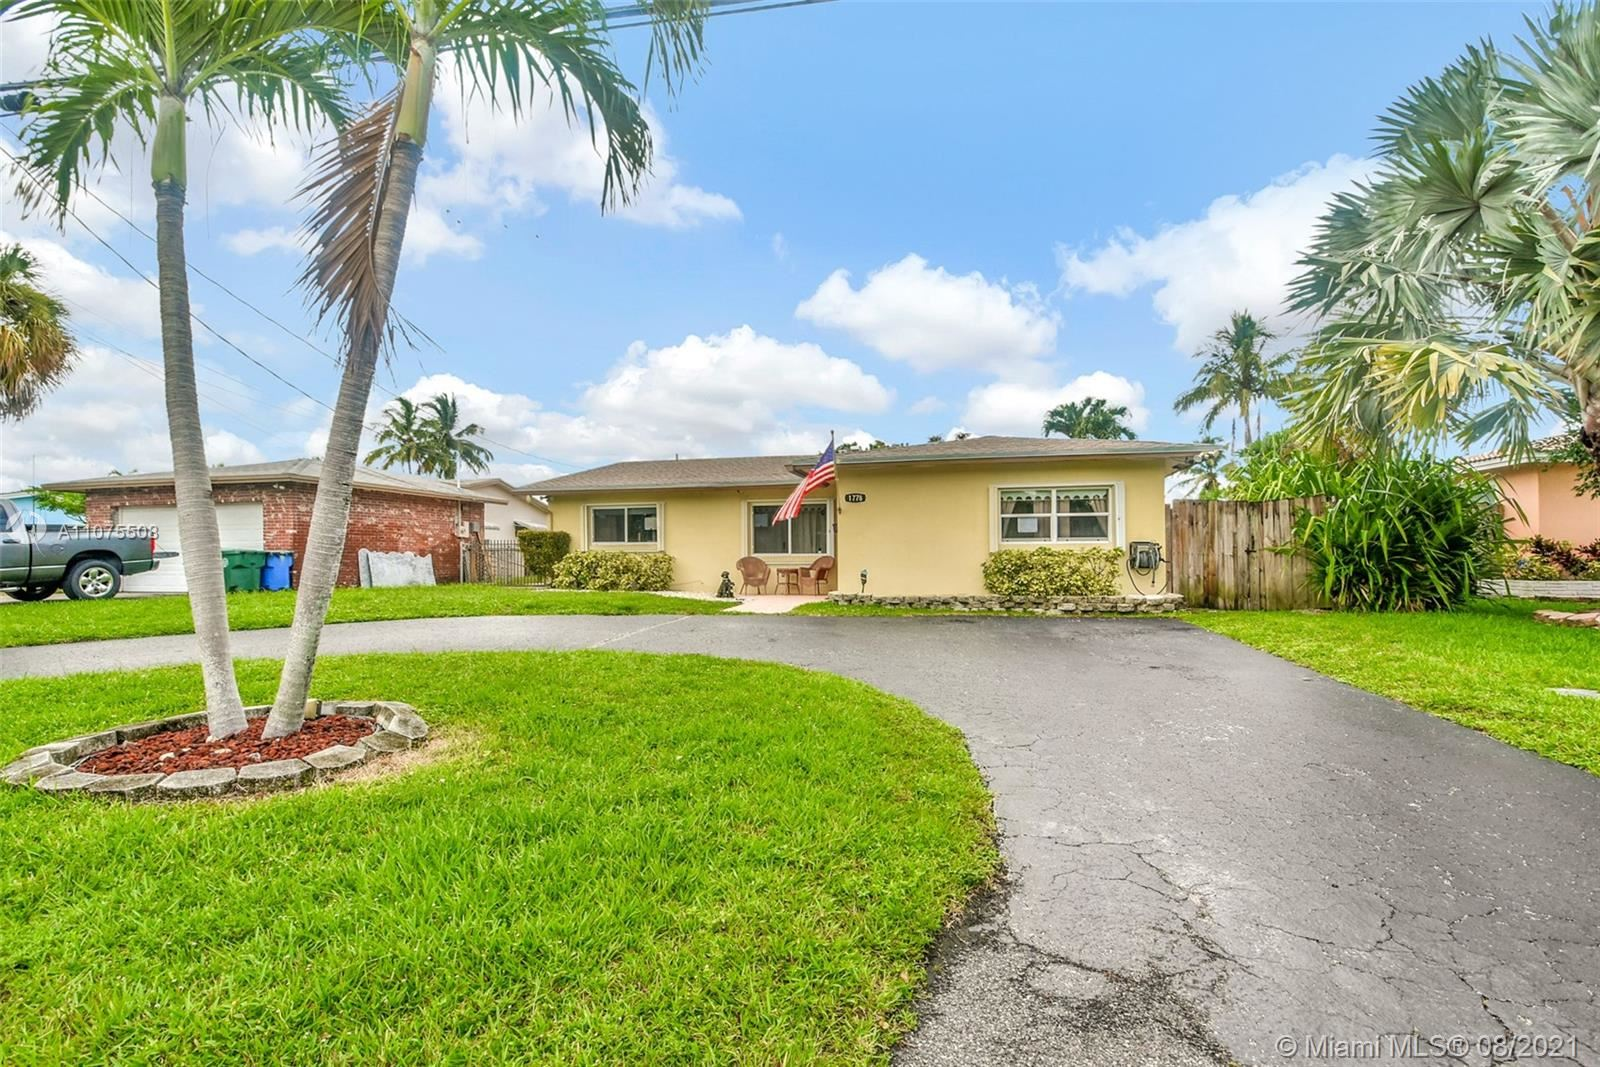 Photo of 1778 NW 38th St, Oakland Park, FL 33309 (MLS # A11075508)